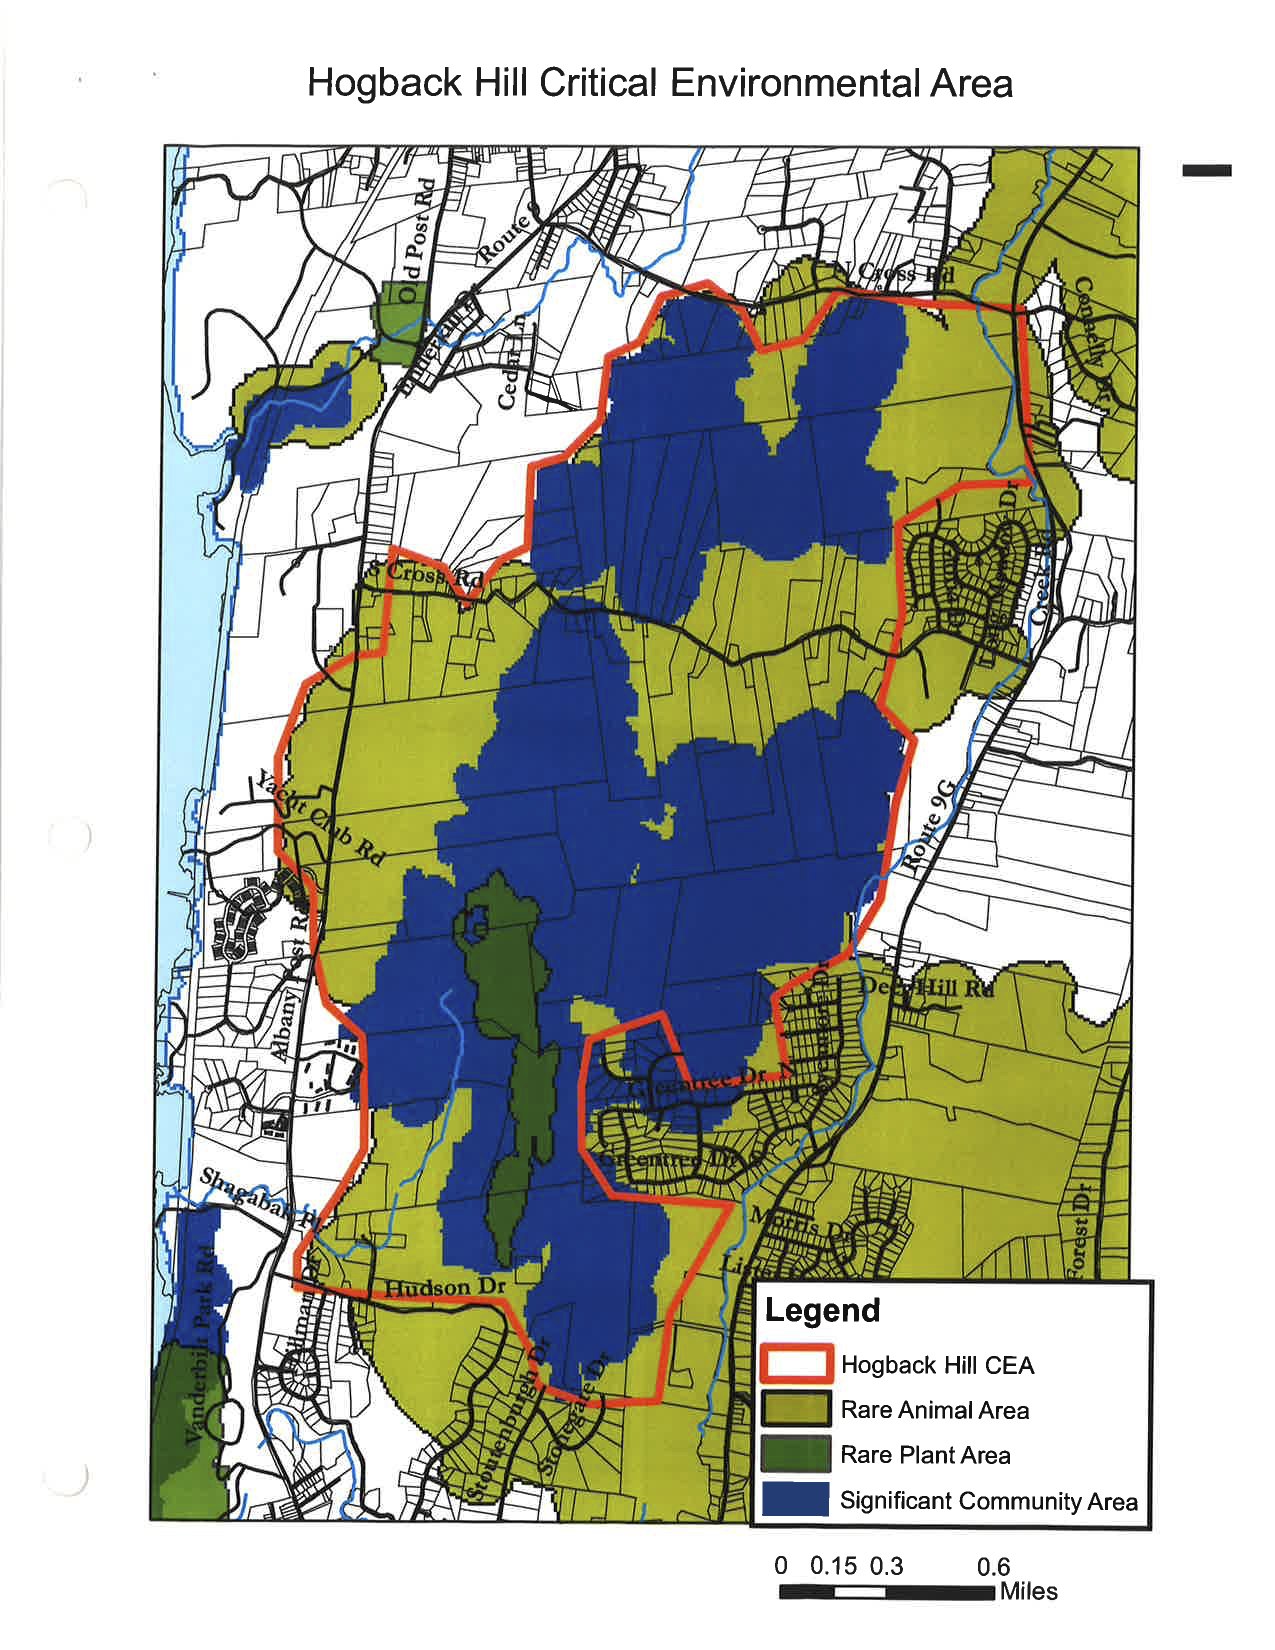 Hogback Hill Critical Environmental Area Map